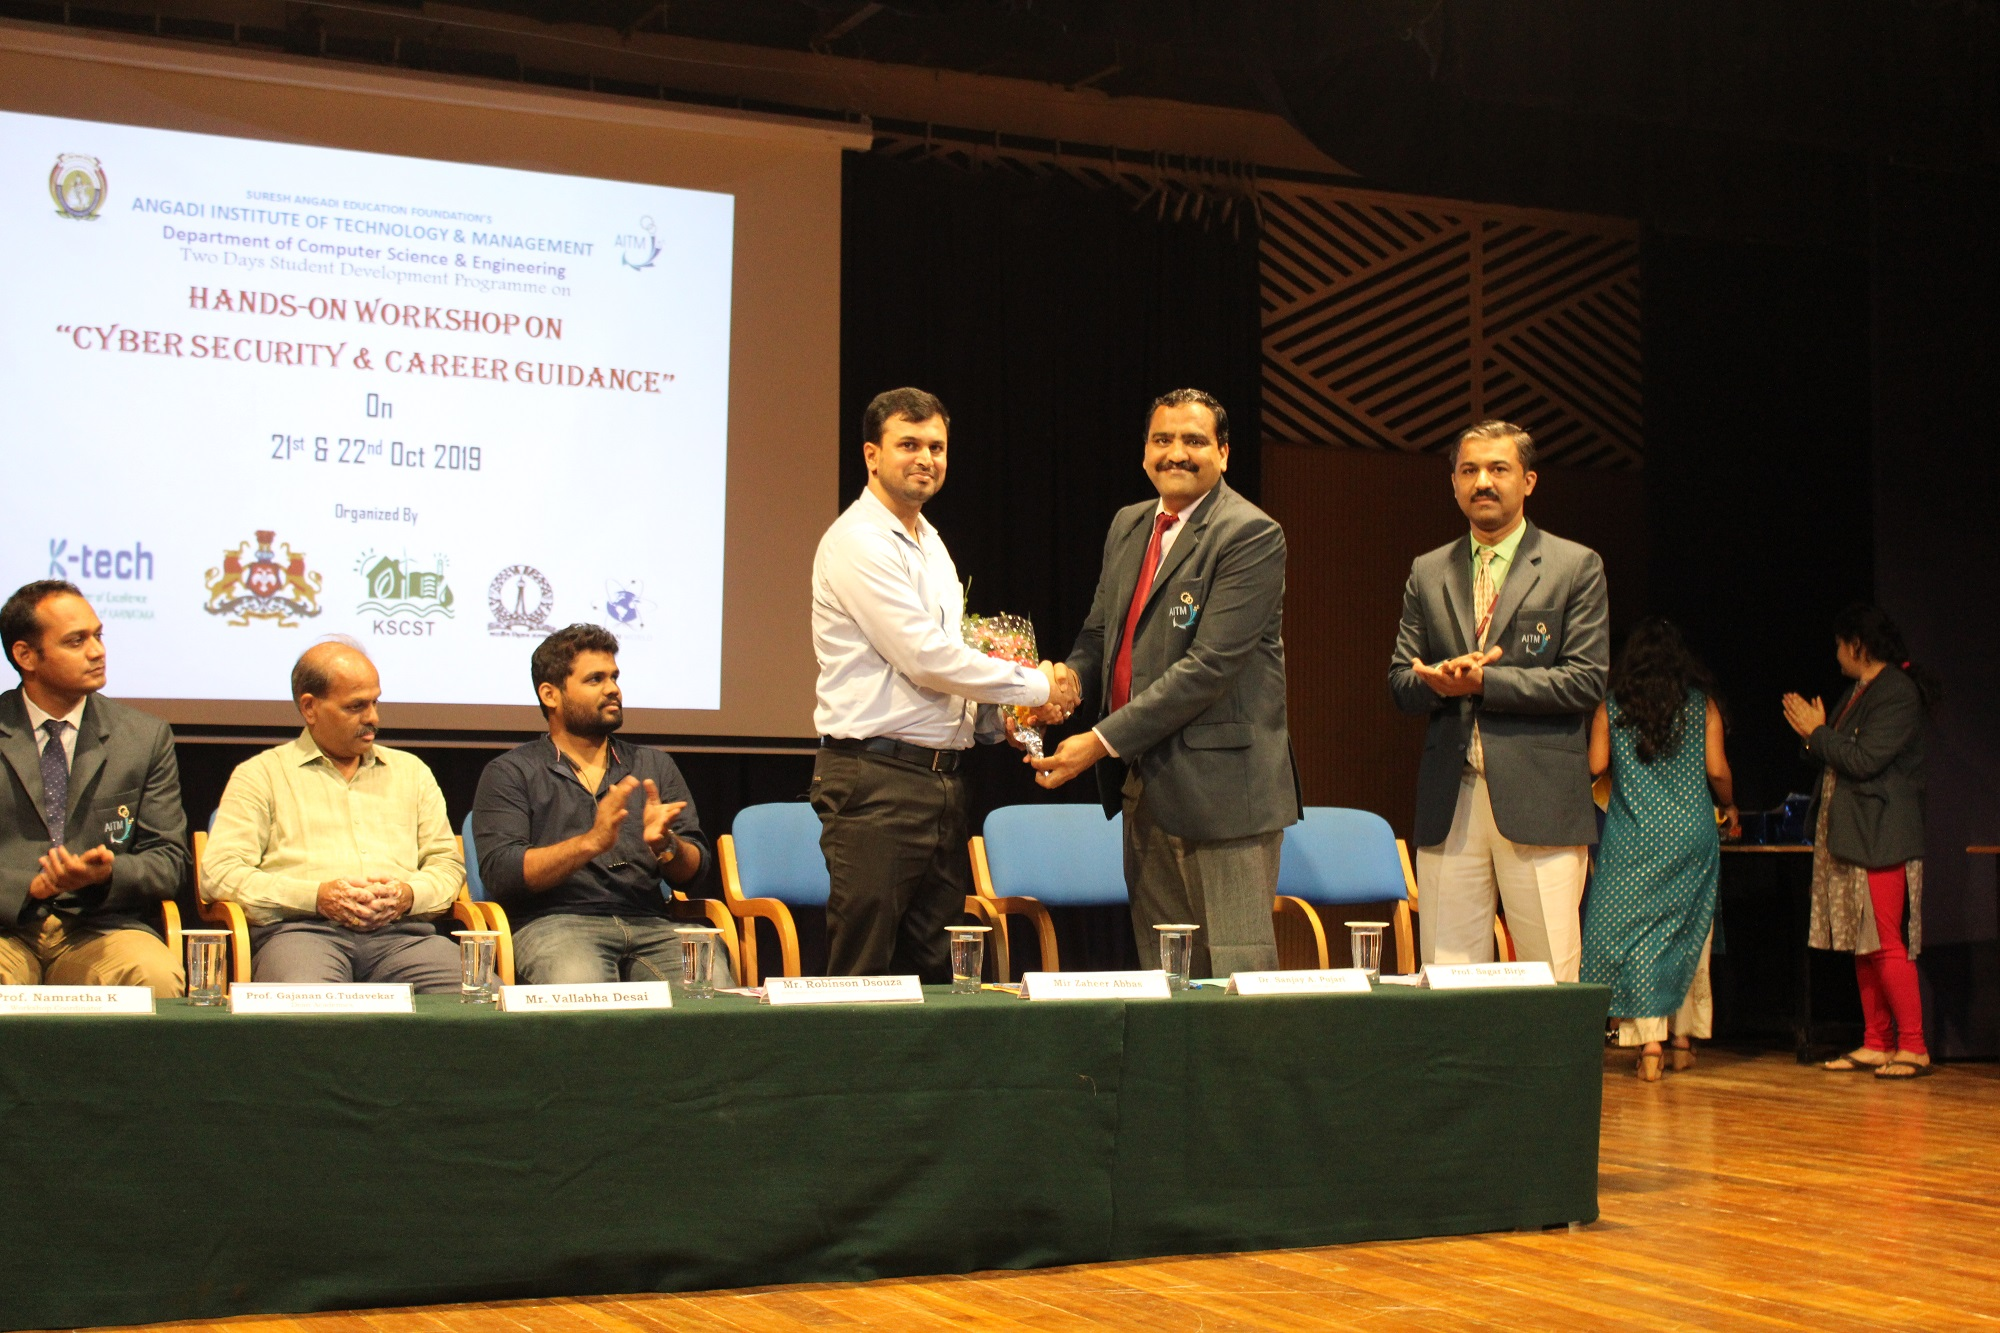 """Inauguration of Two Days Student Development Programme """"Cyber Security"""" and Career Guidance on Cyber Security"""